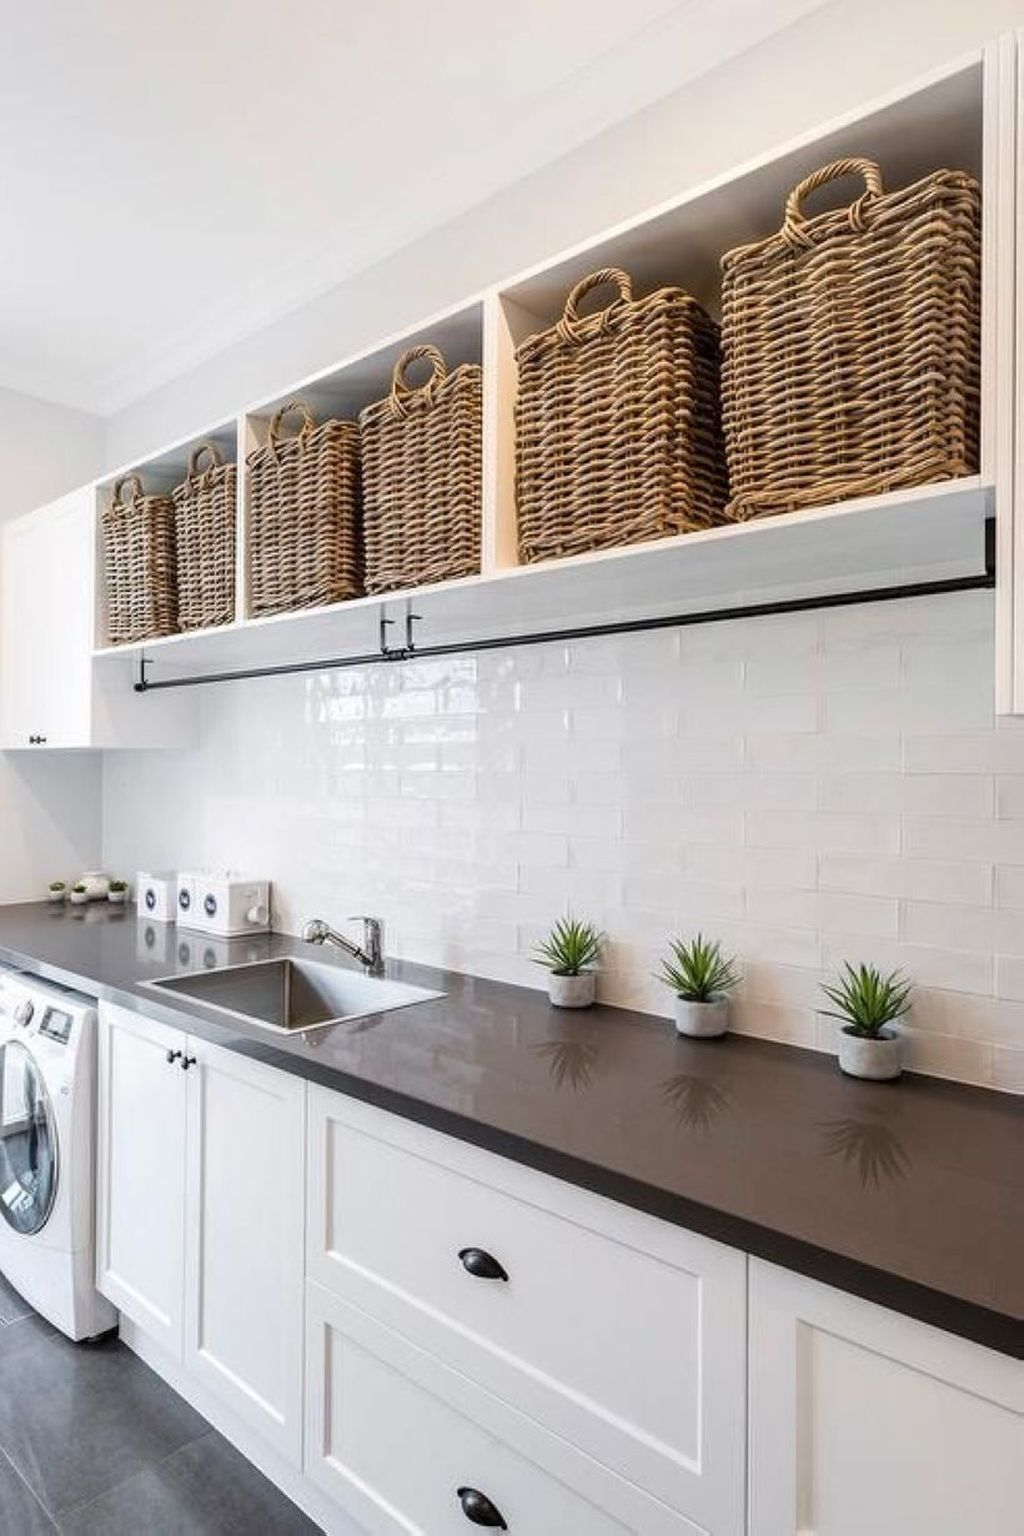 39 Perfect Laundry Room Designs Ideas For Small Space #laundryrooms